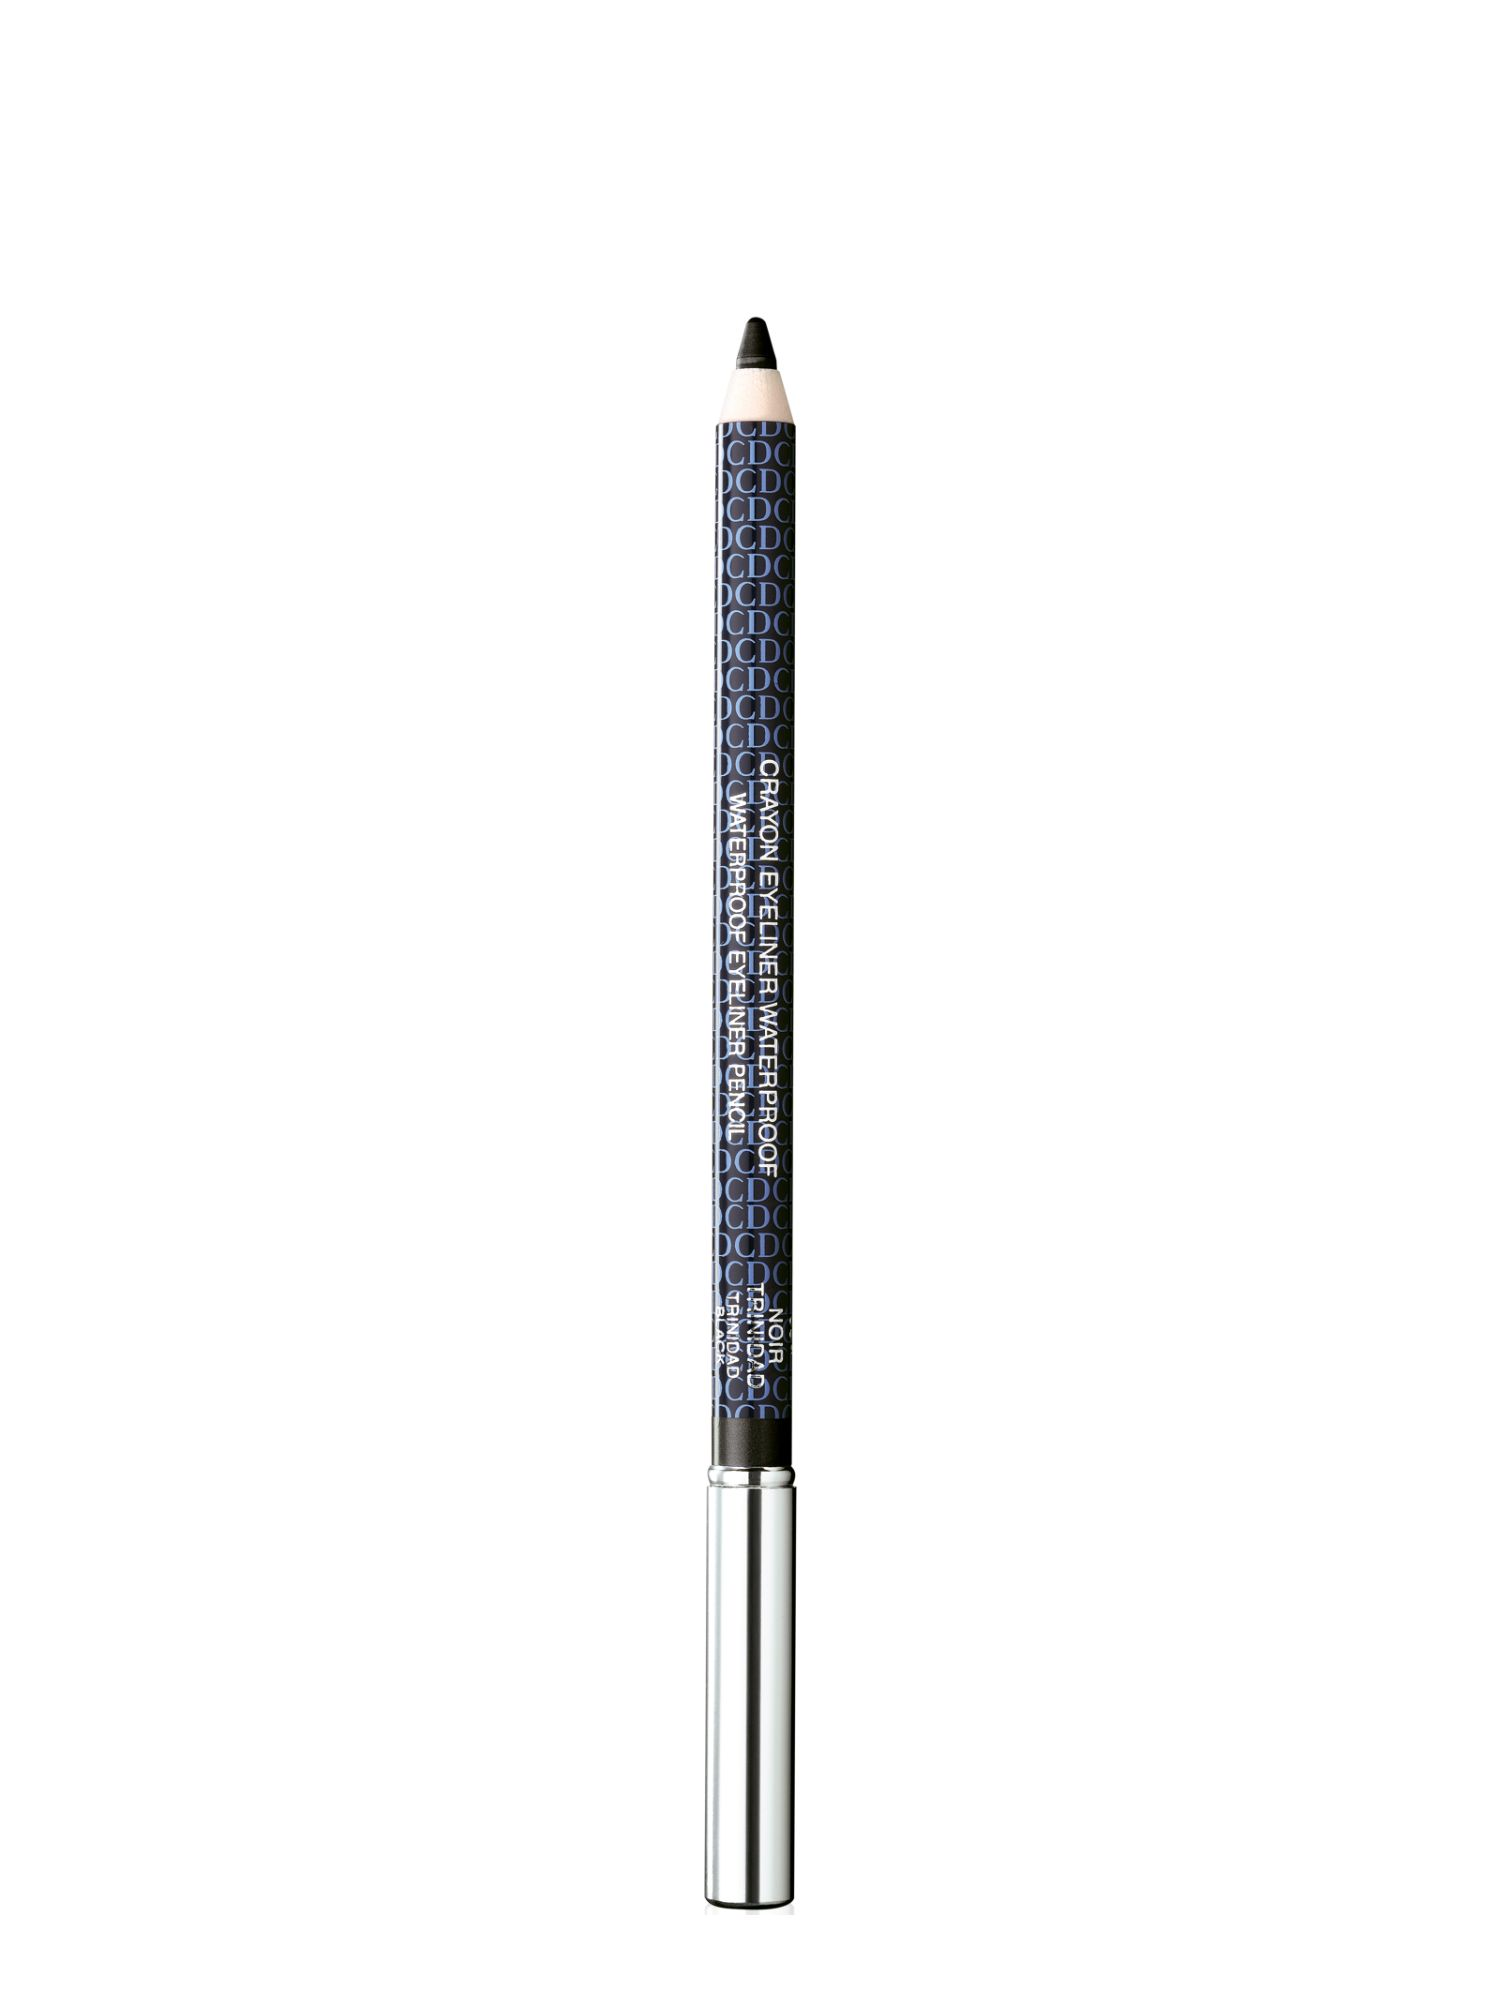 Crayon Eyeliner Waterproof Long-wear Pencil